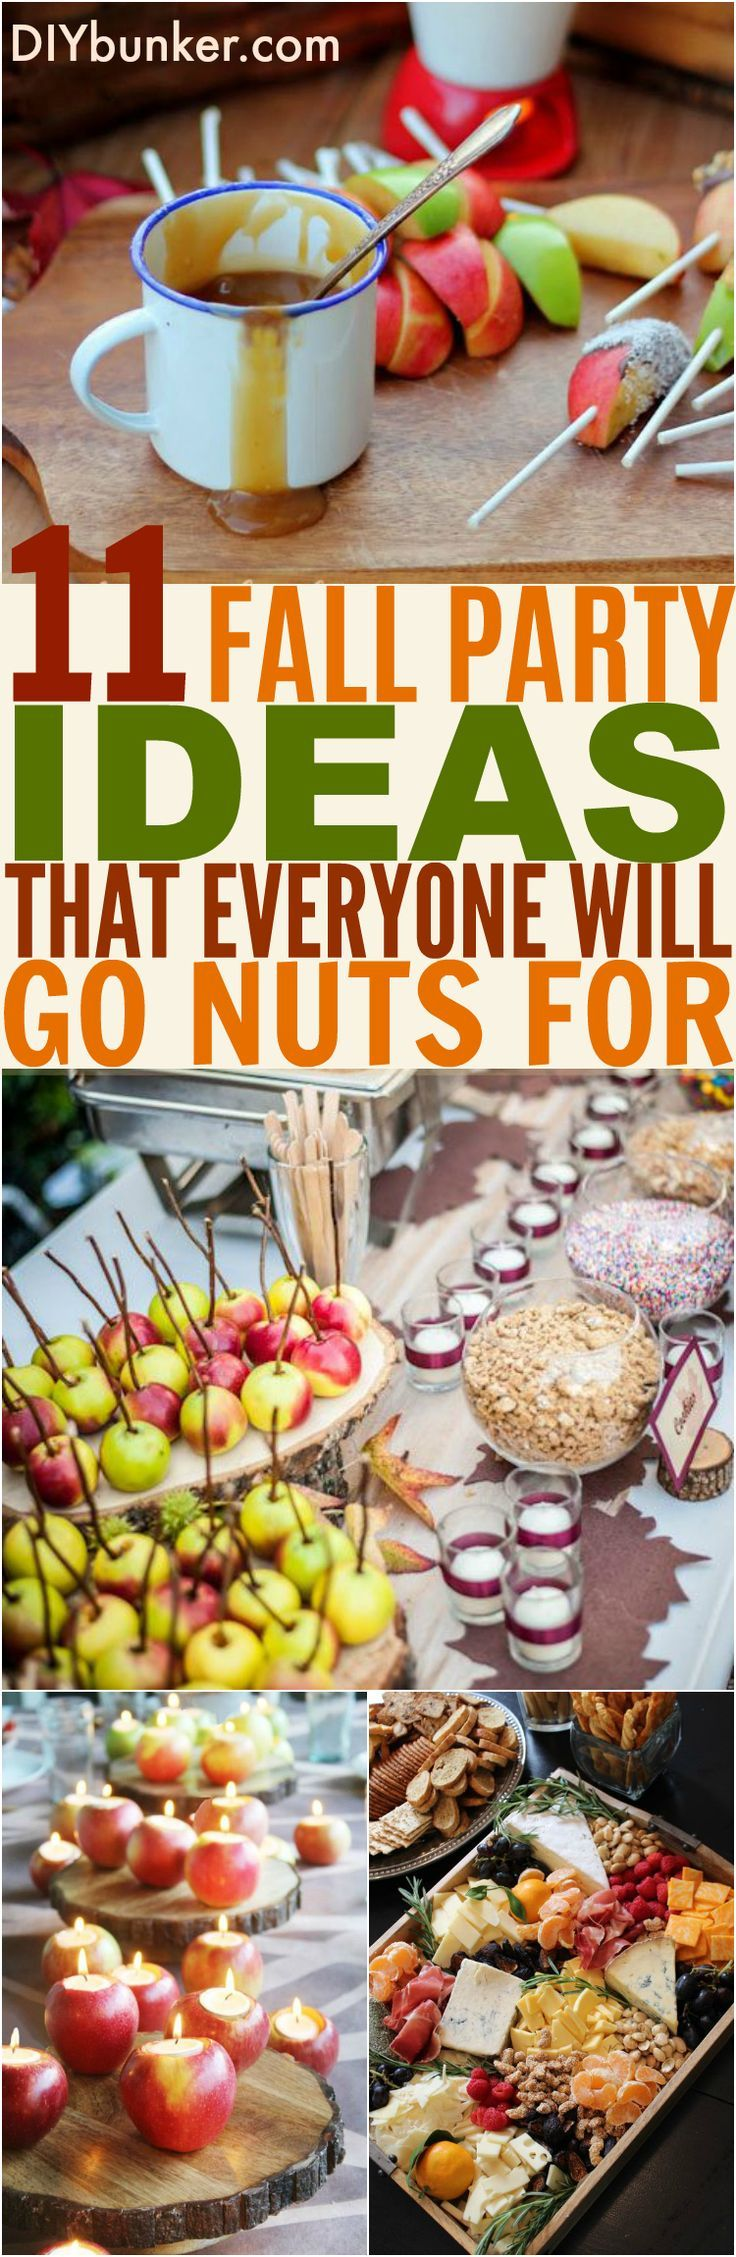 These 11 Fall Party Ideas Are GENIUS! I love the coffee and caramel apple bar ideas, so cool!